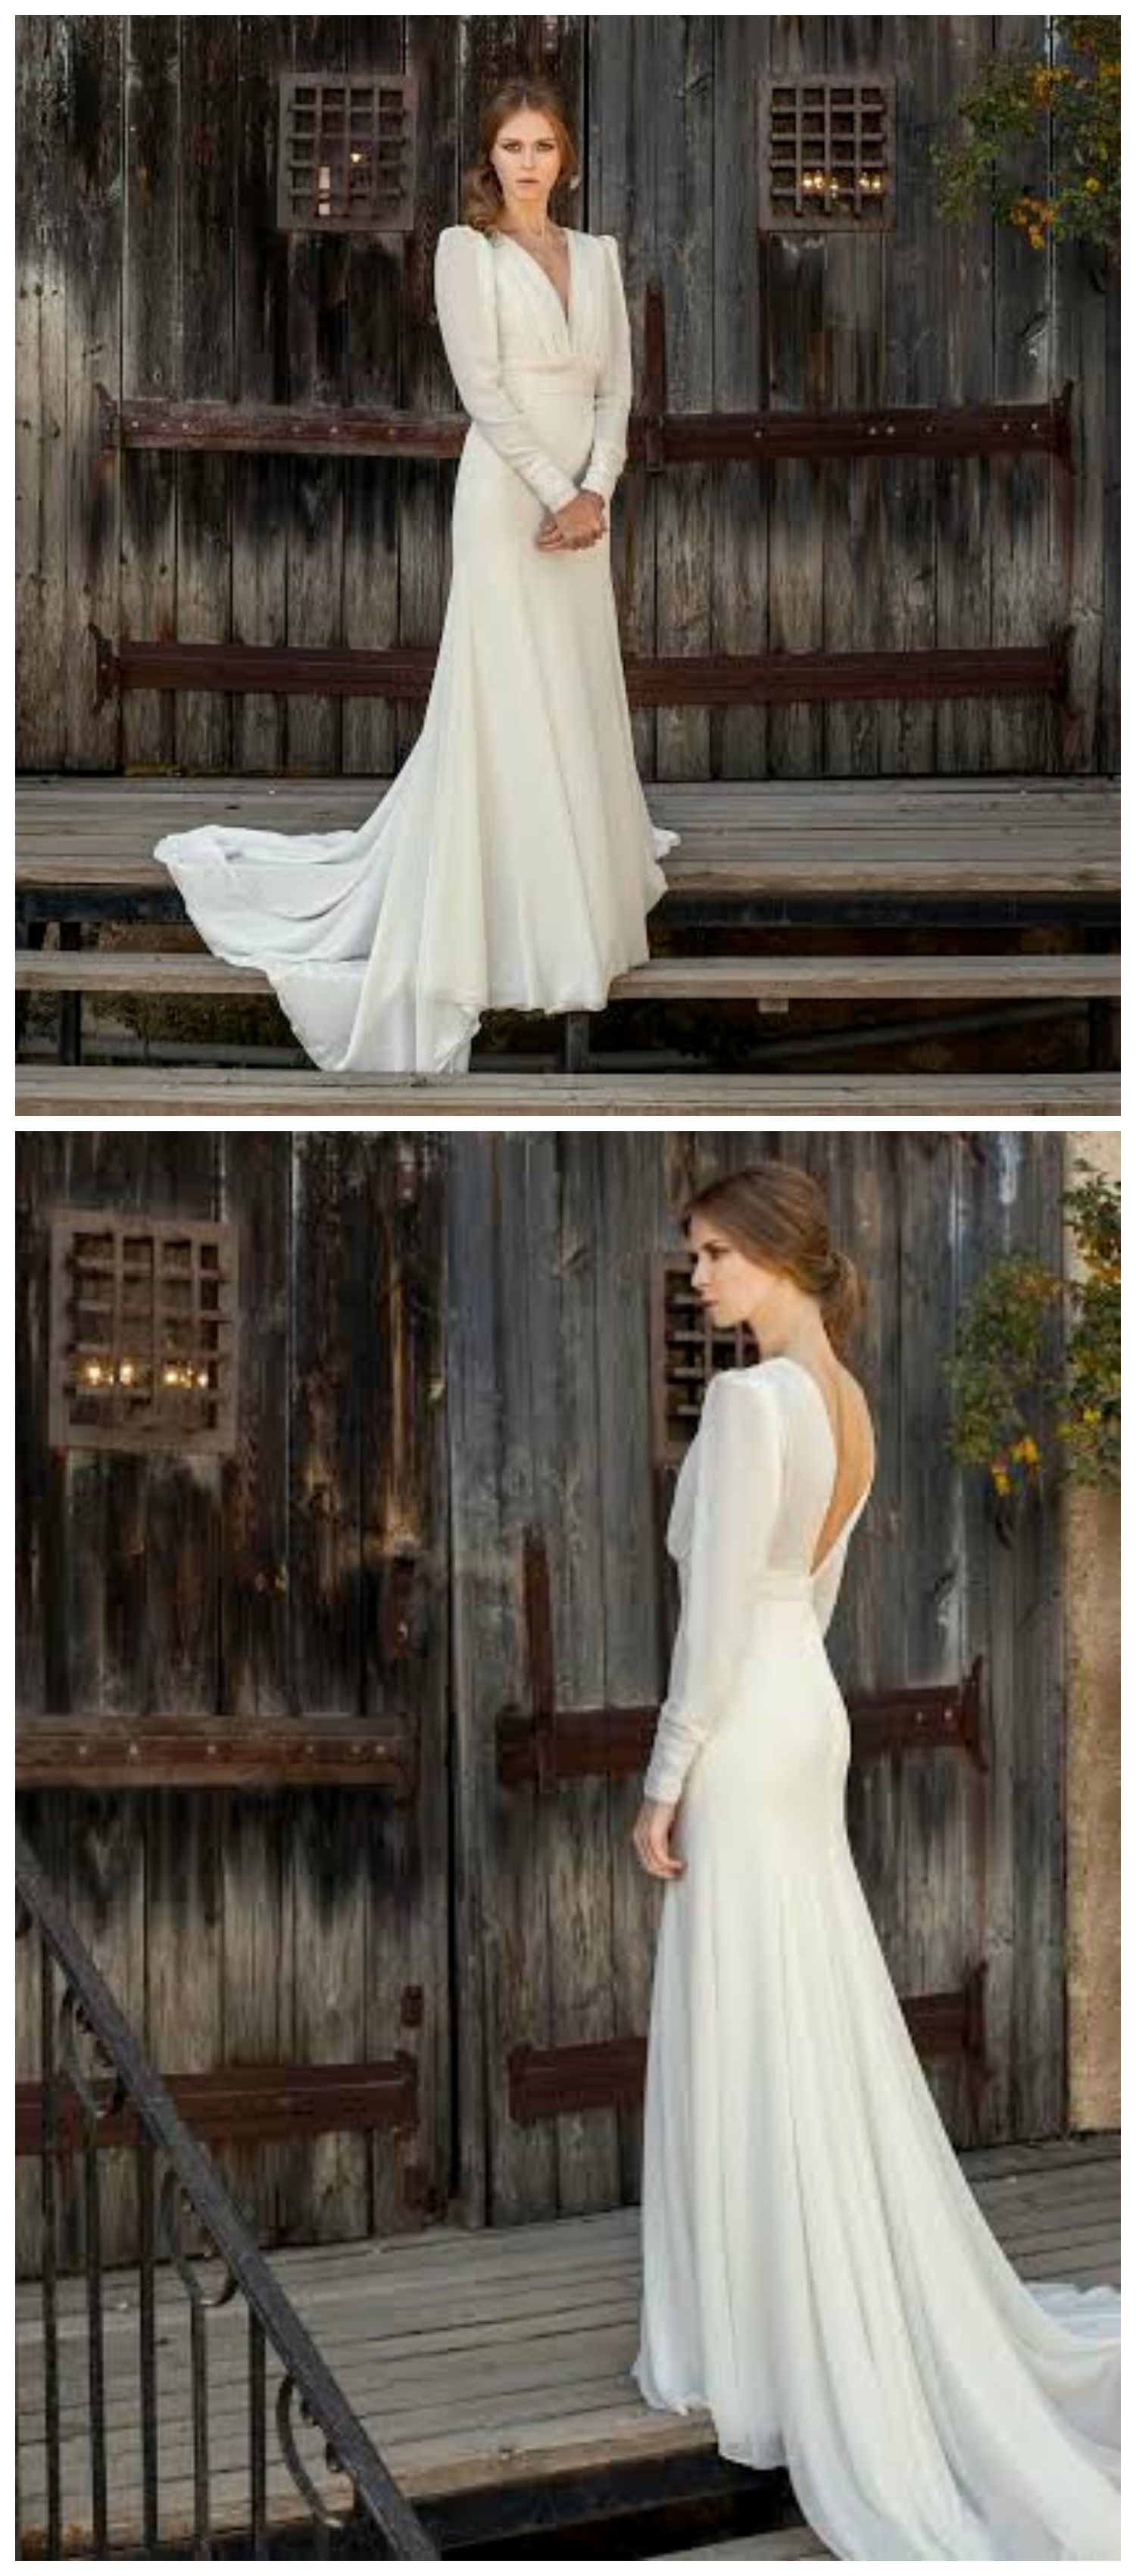 Long sleeve wedding dress vintage wedding dress bridal gown off